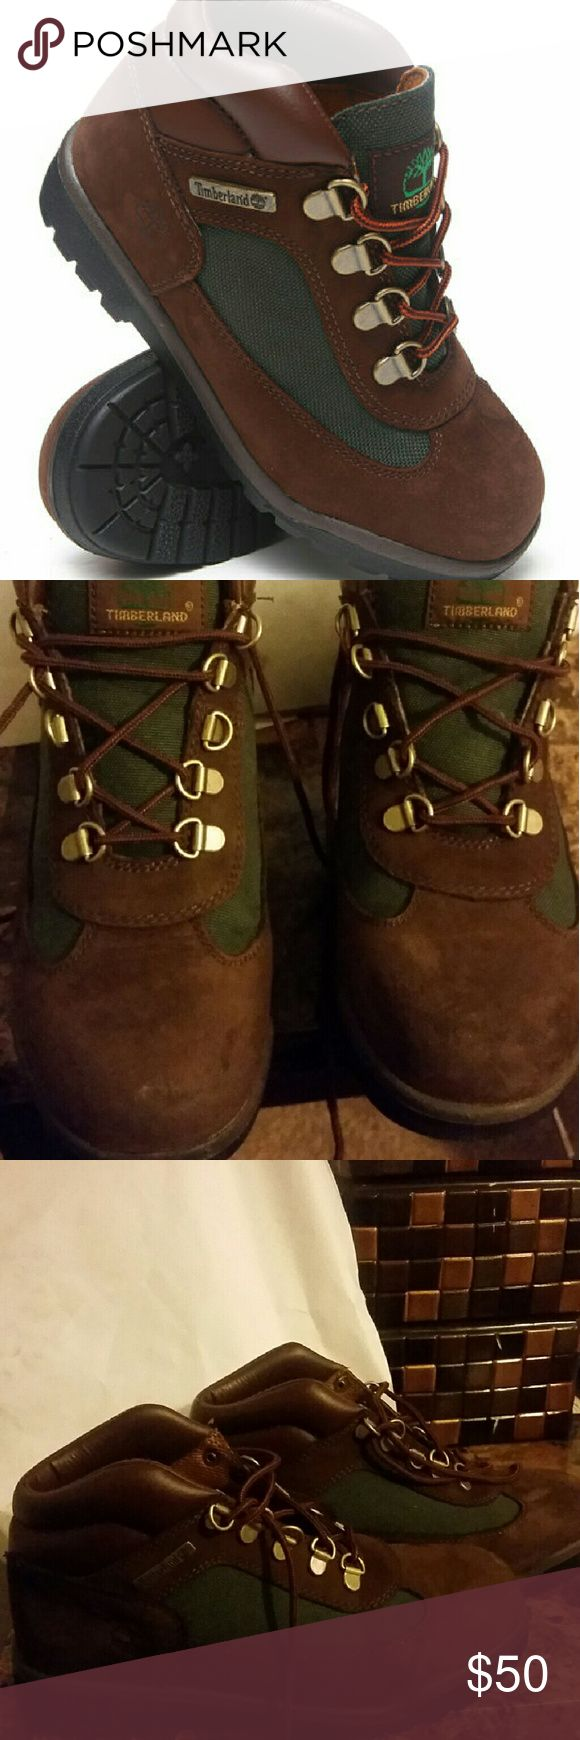 Timberland Field Boots boys Excellent condition barely worn Field boys boots by Timberland. Timberland Shoes Boots